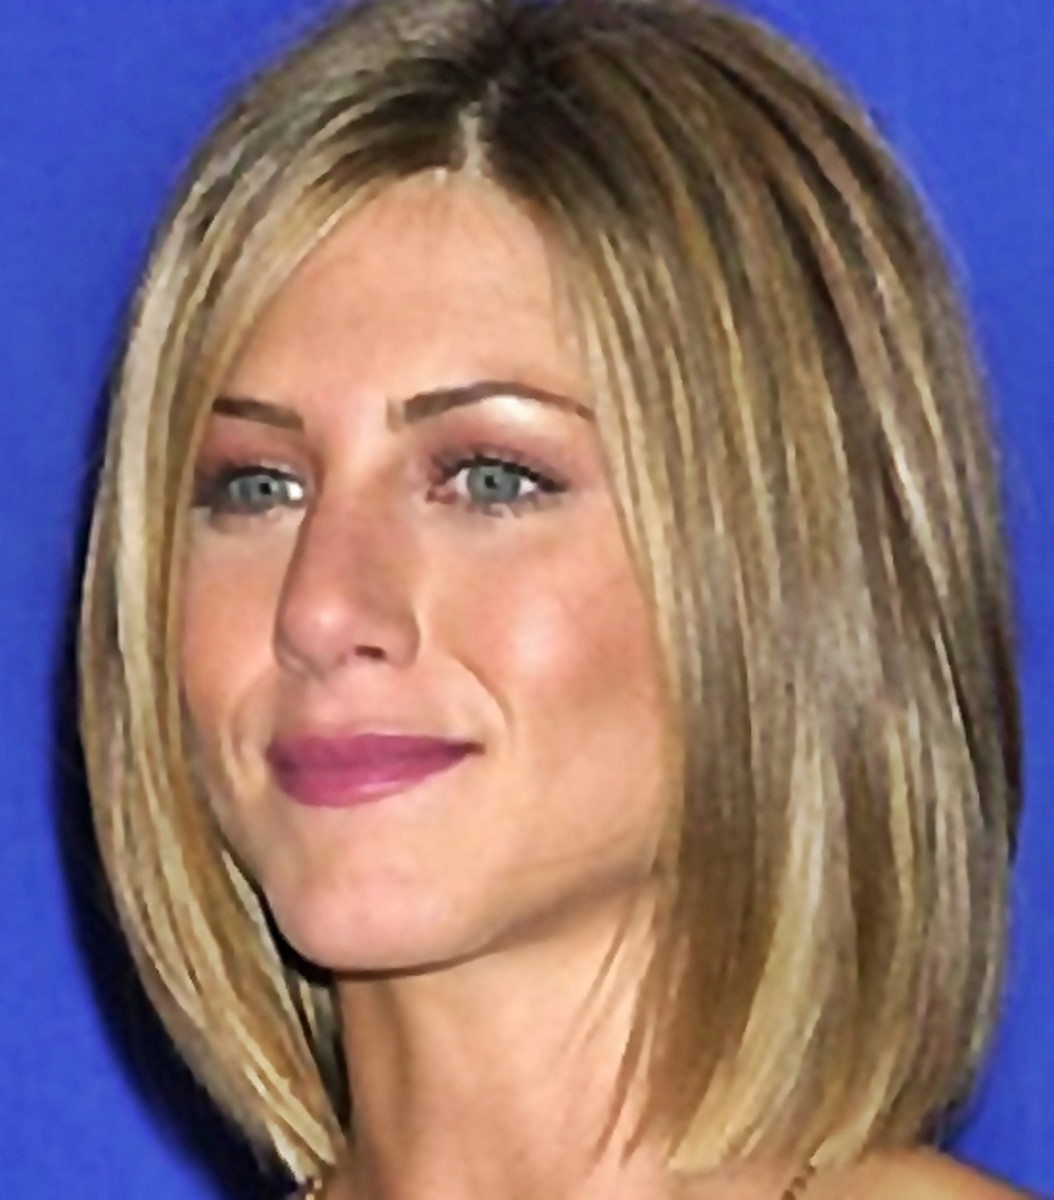 Jennifer Aniston's new bob hair style. This is bob hair style is shorter in the back which is also known as an invested bob - Bob Hairstyles 2013 - Bob Hair Styles